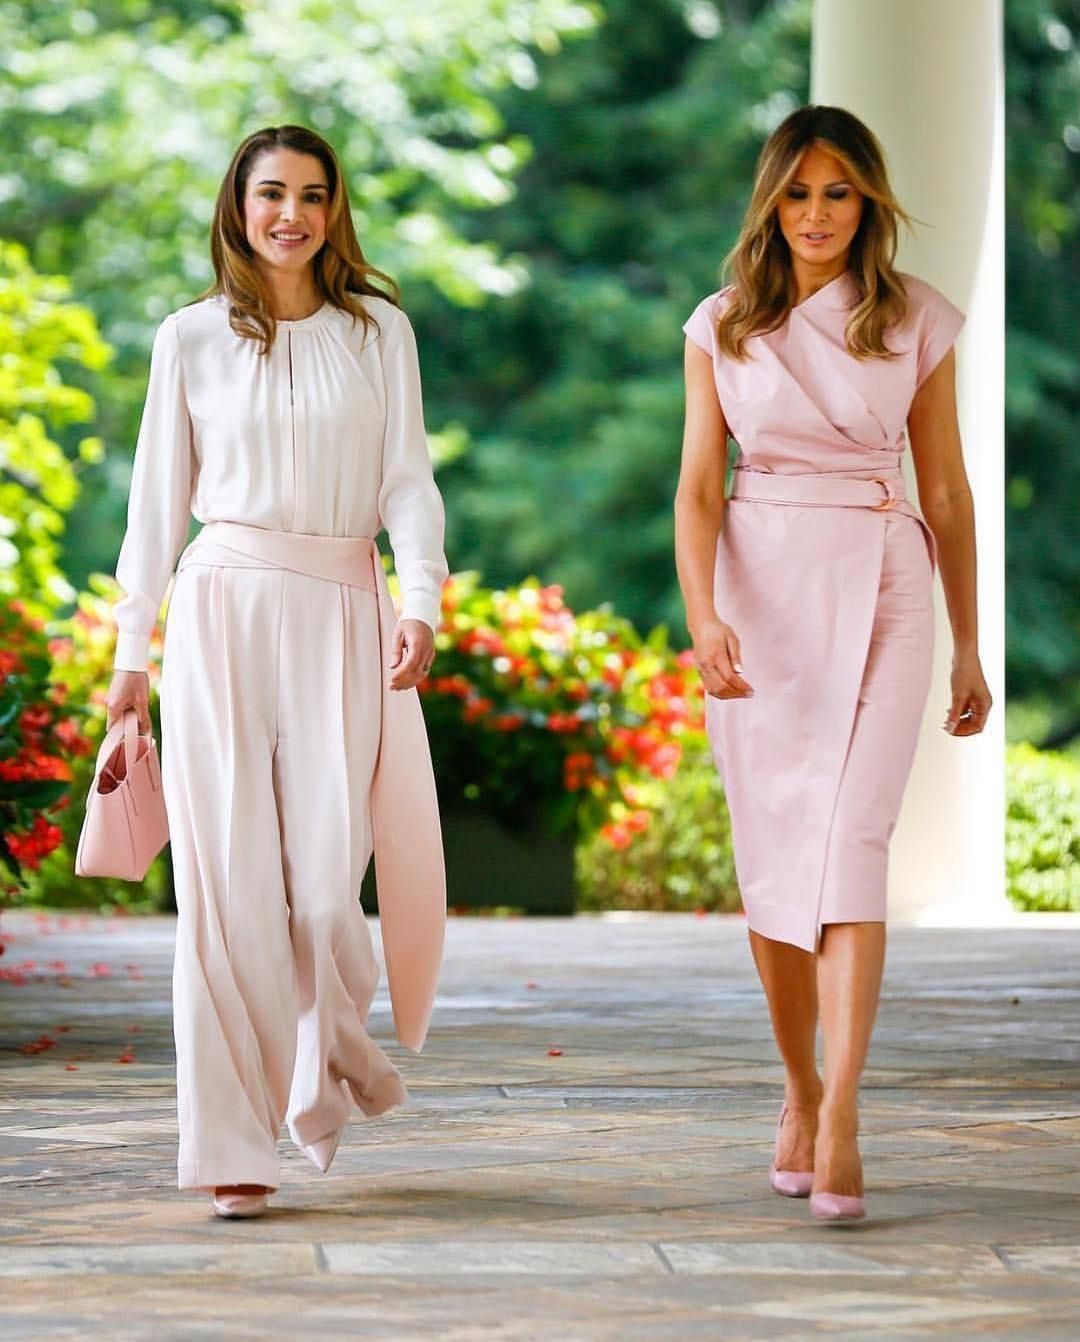 Queen Rania In Palazzo Pants Fashion Dresses Queen Rania